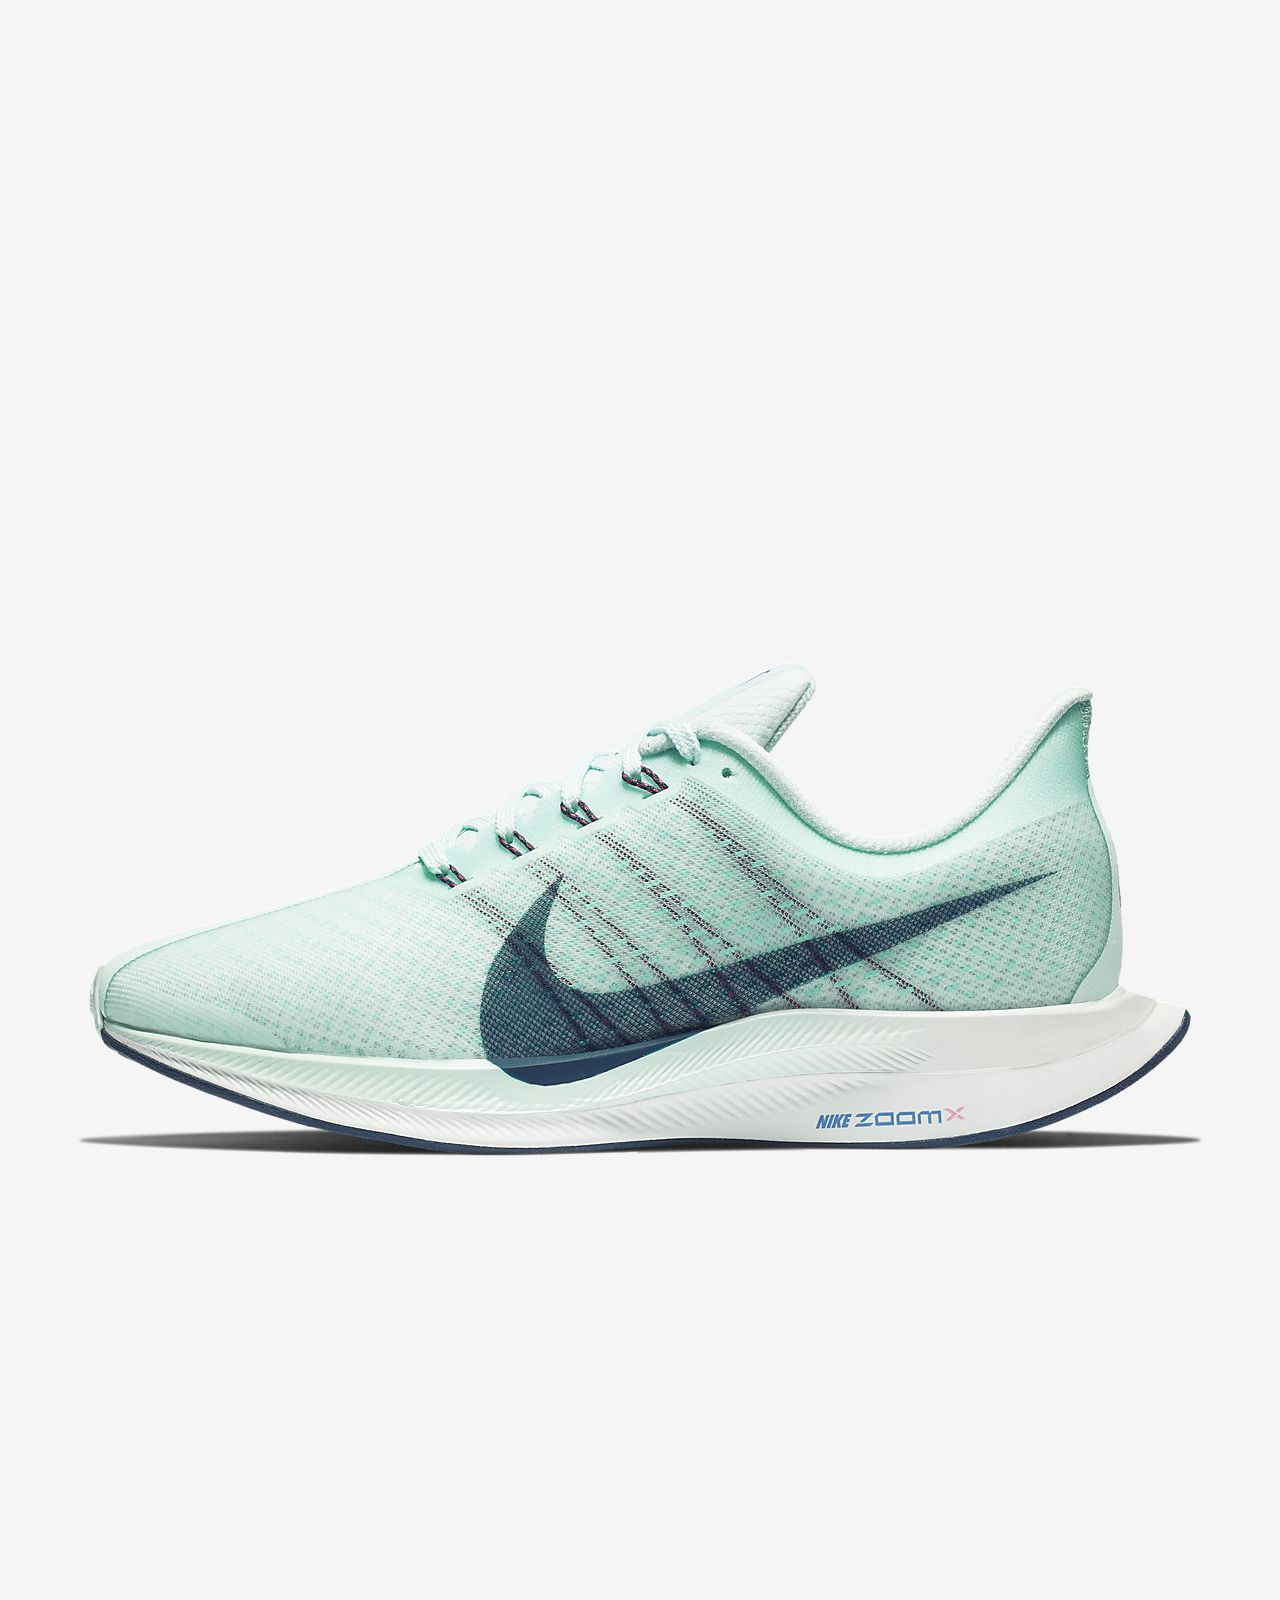 1025197480a1ea Nike Zoom Pegasus Turbo Women s Running Shoe. Nike.com VN